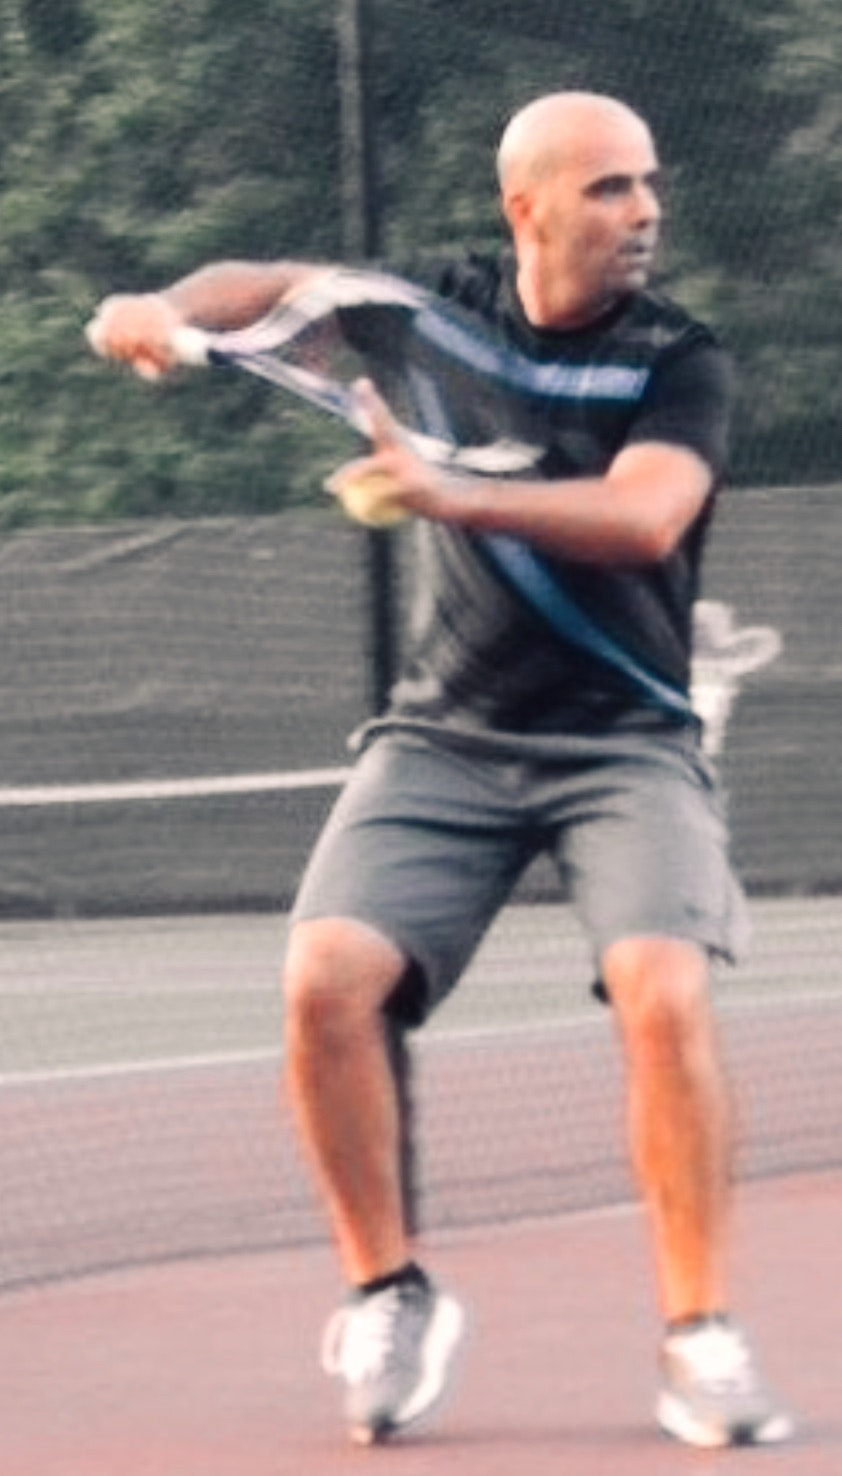 Mehdi B. teaches tennis lessons in Wesley Chapel, FL